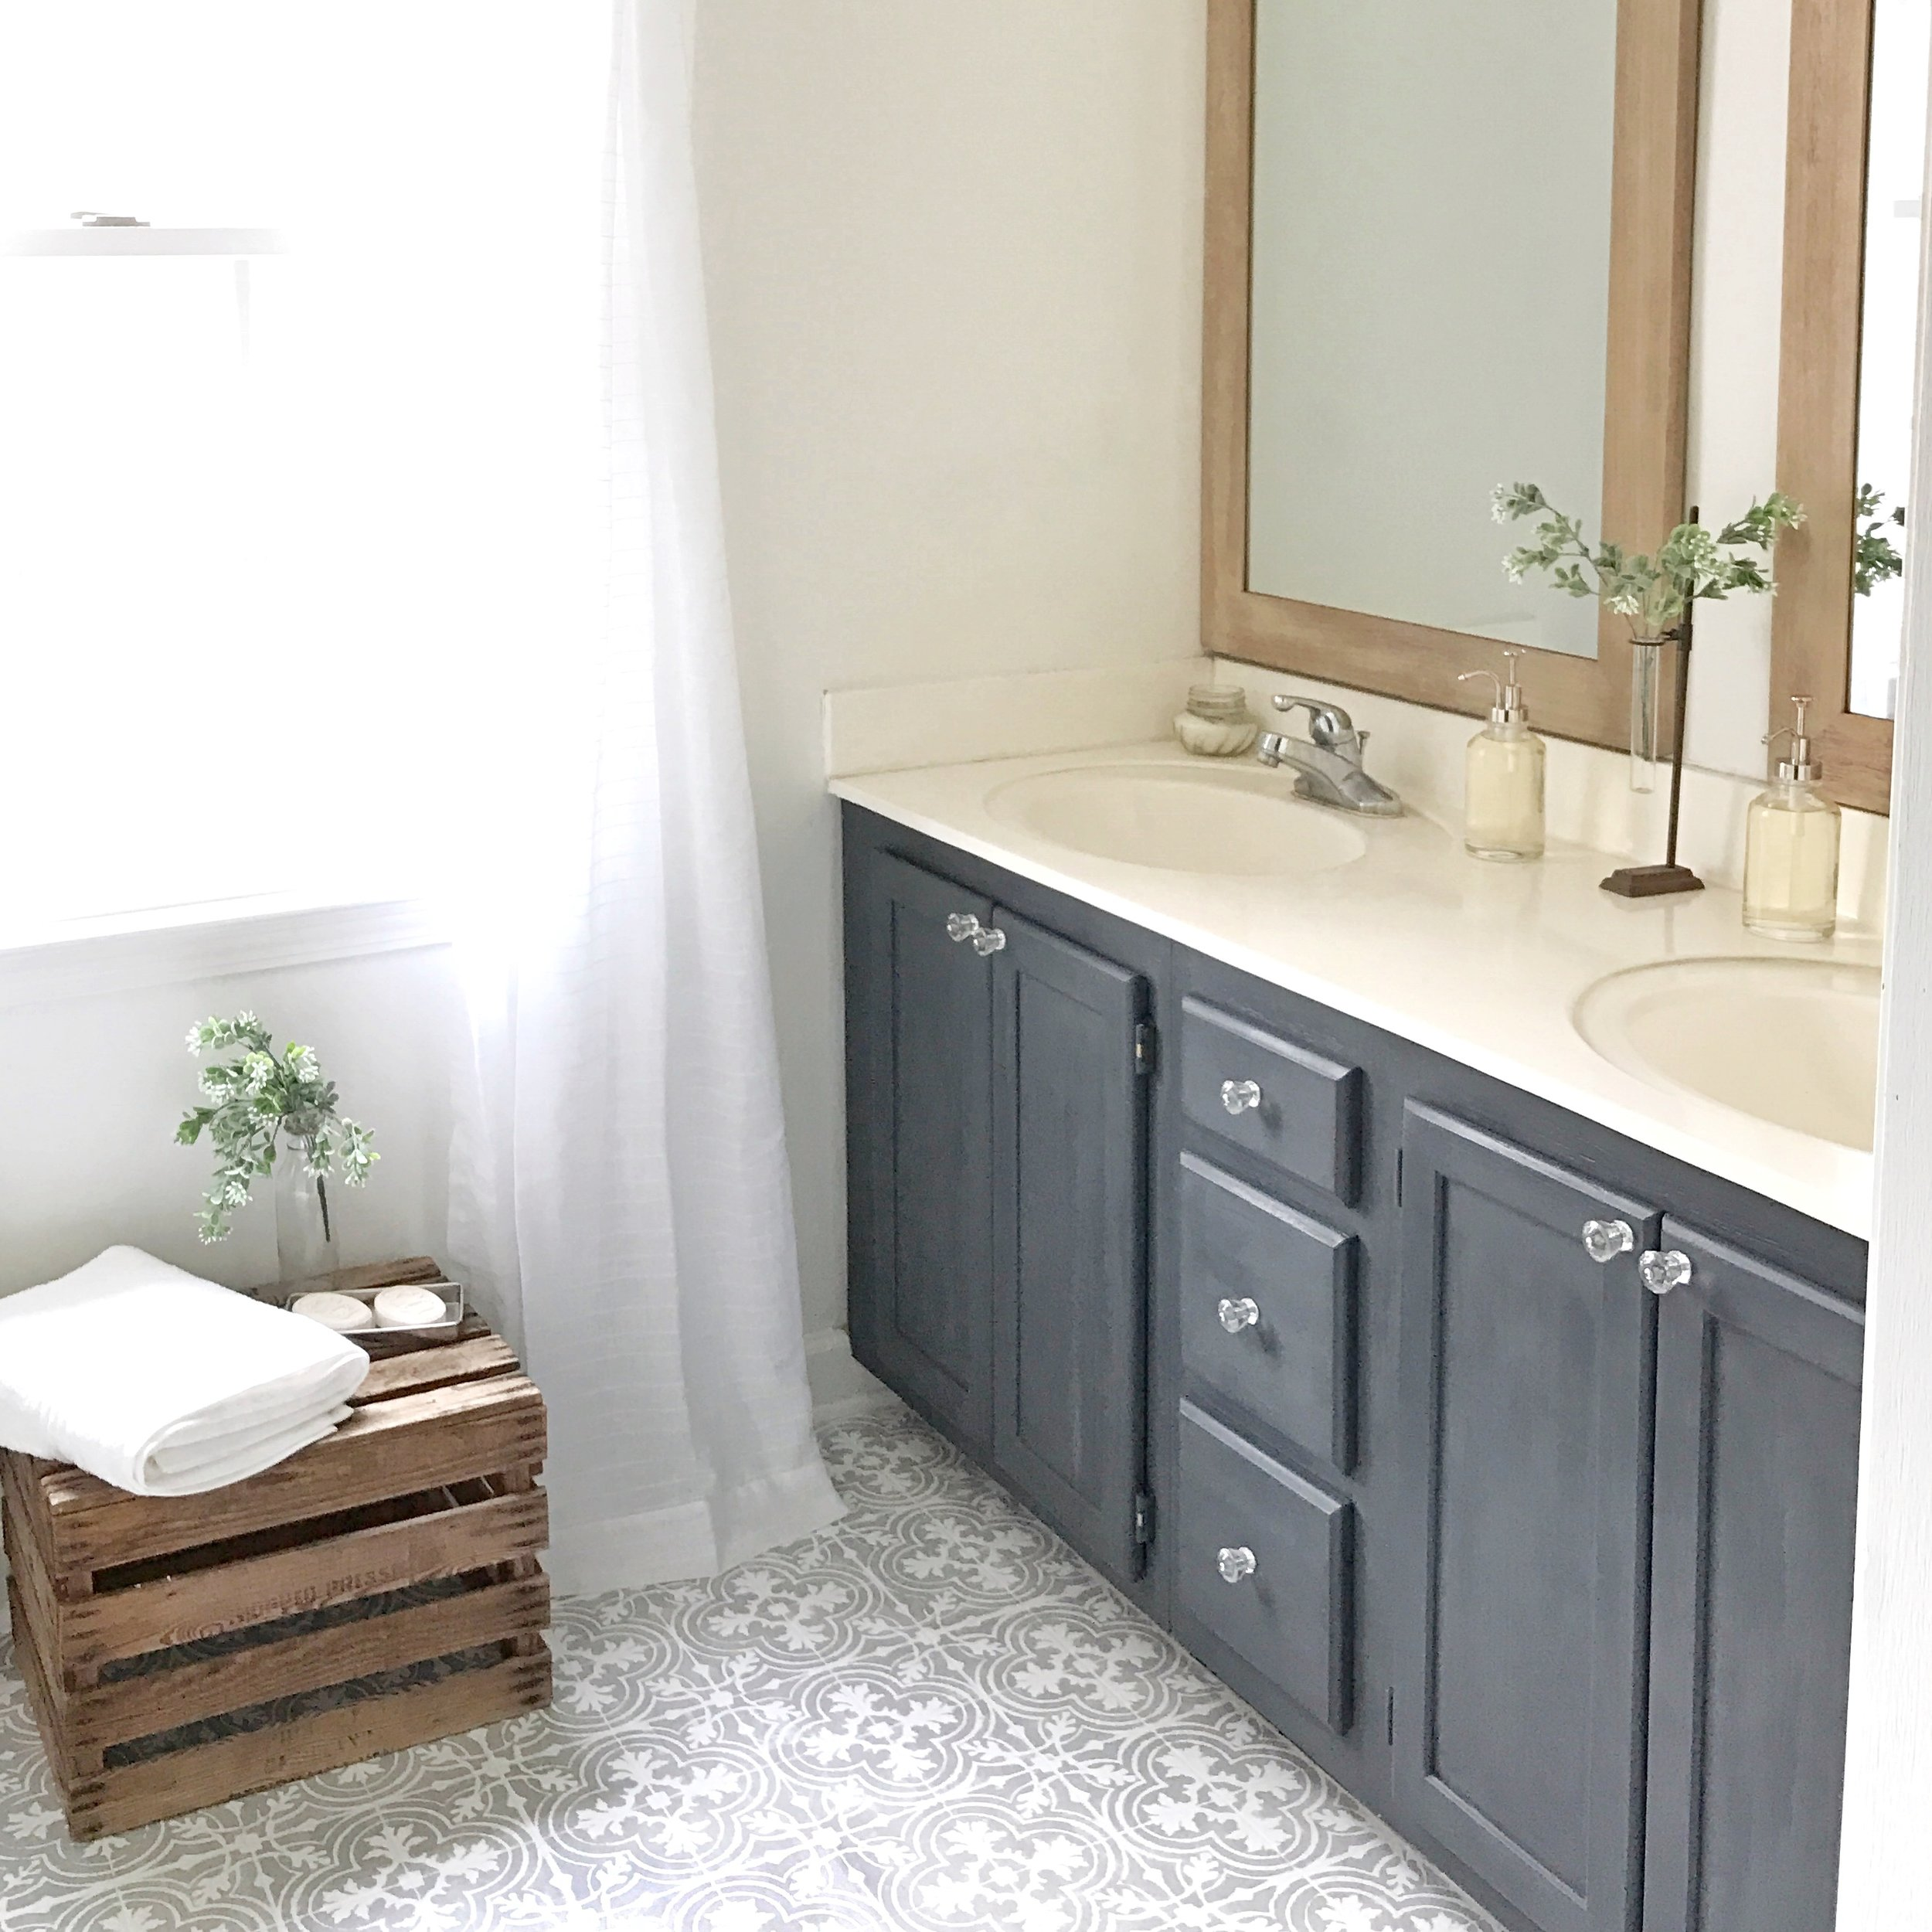 DIY Tutorial- How to Paint Your Linoleum or Tile Floors to Look Like Patterned Cement Tiles- Full Bathroom Makeover by Plum Pretty Decor and Design